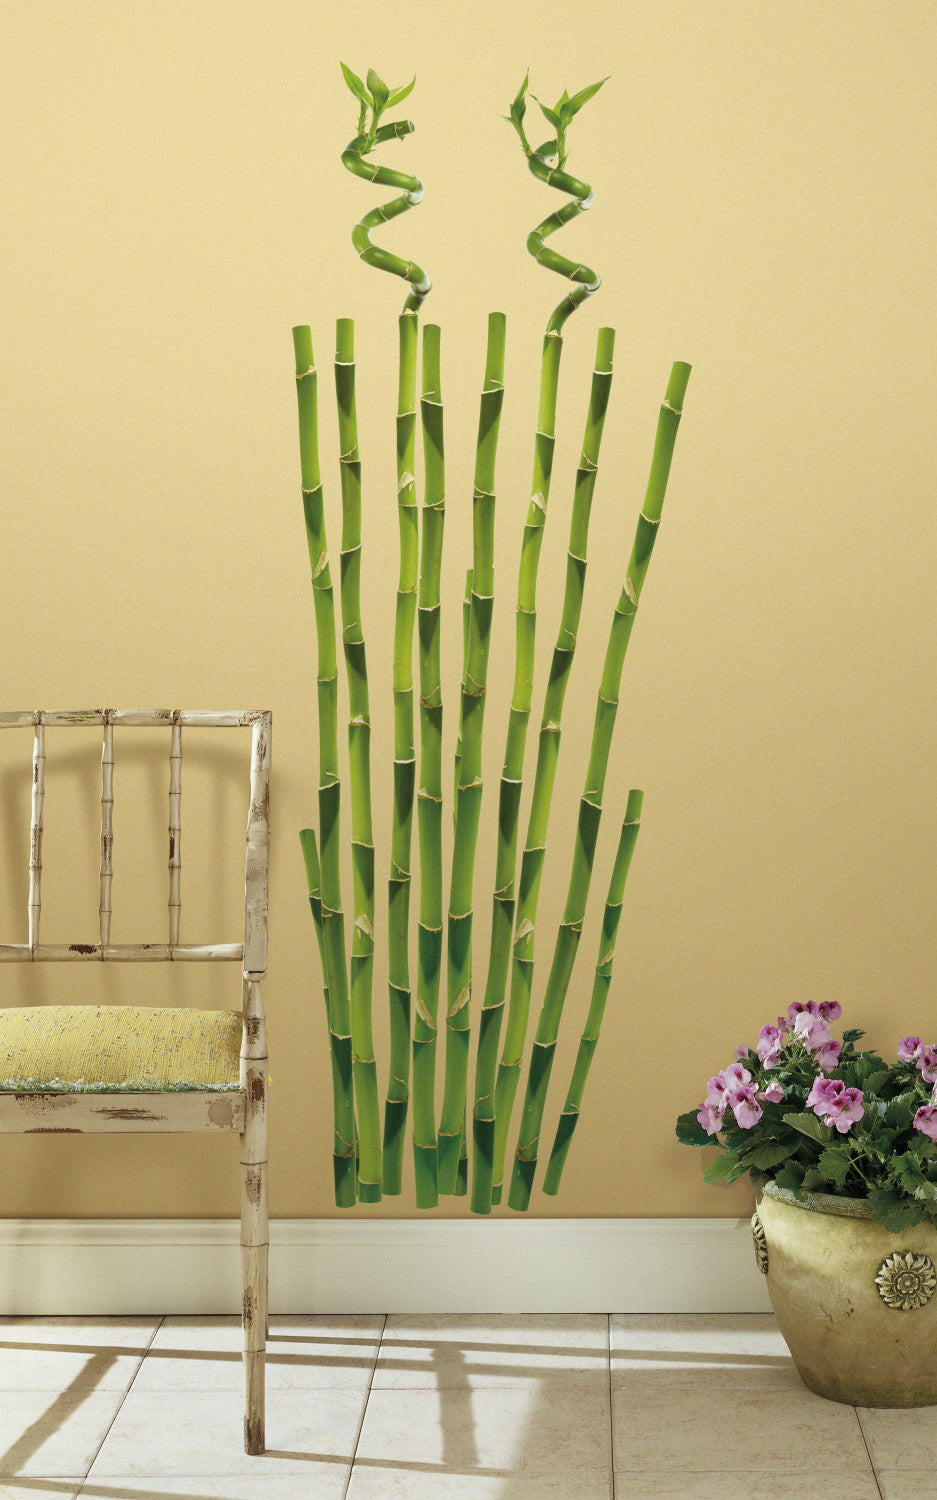 Bamboo Peel & Stick Wall Decals   WallDecals.com